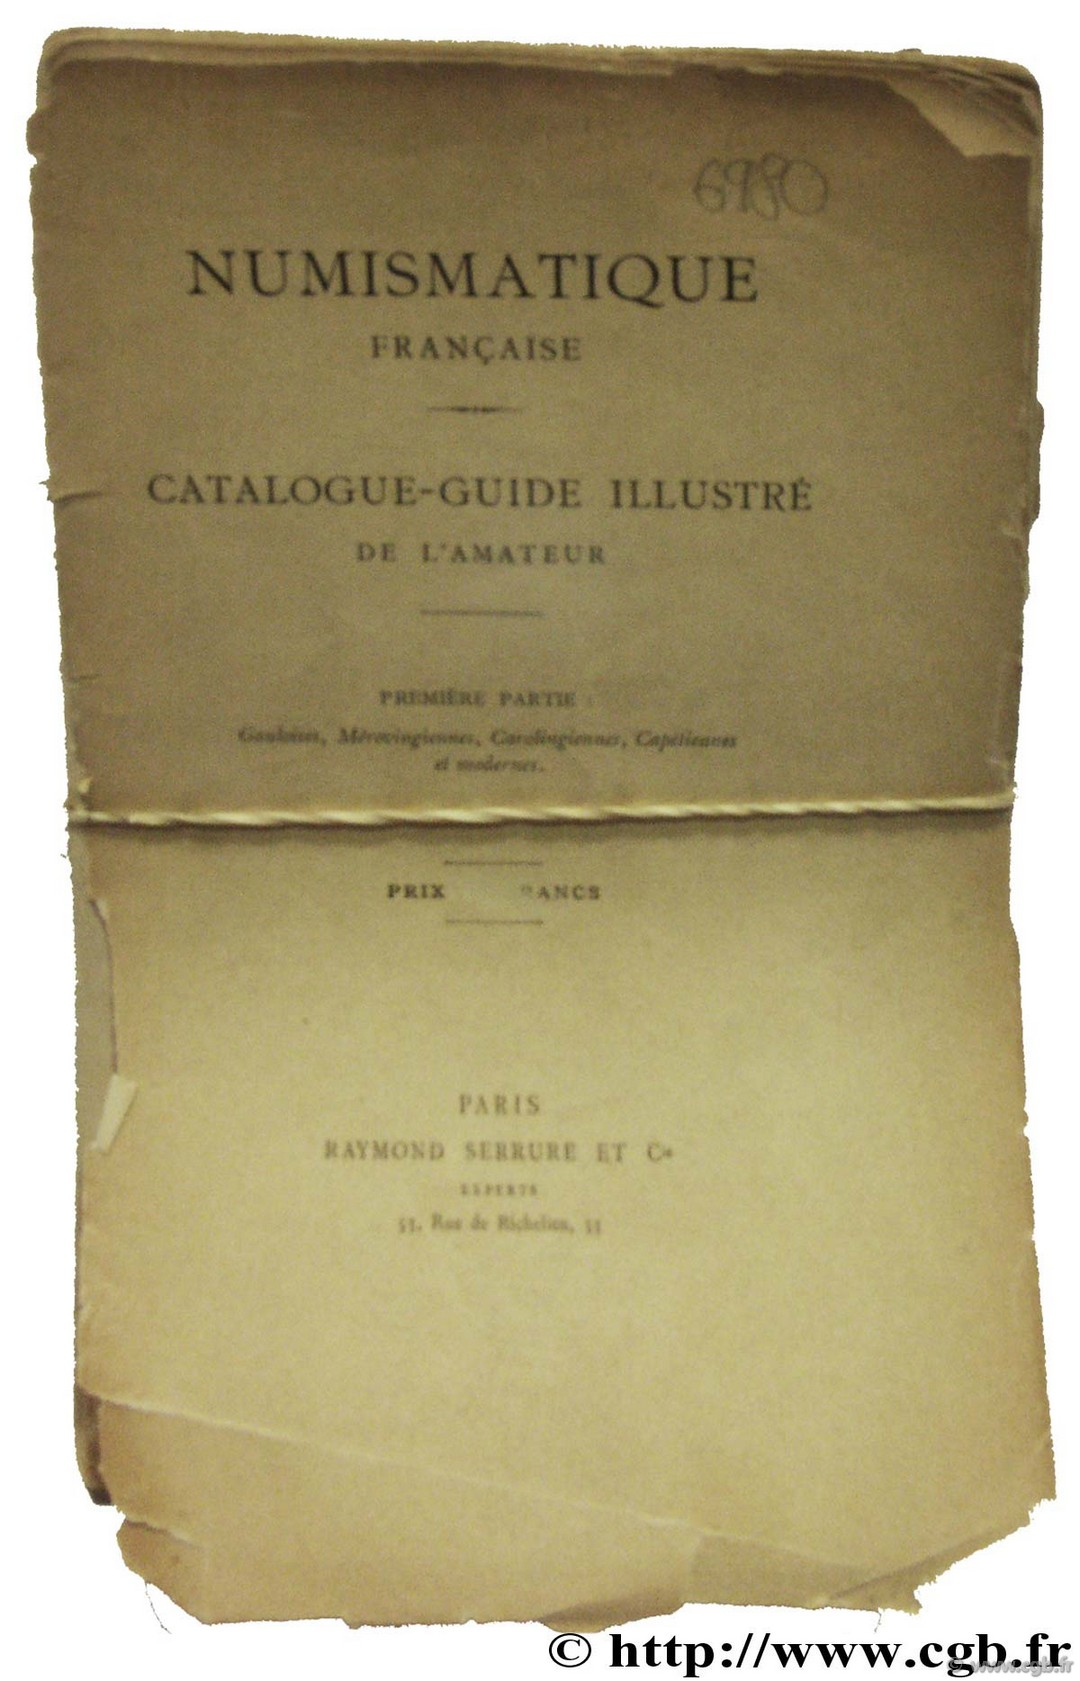 Numismatique Française Catalogue-Guide illustré de l amateur  SERRURE R.